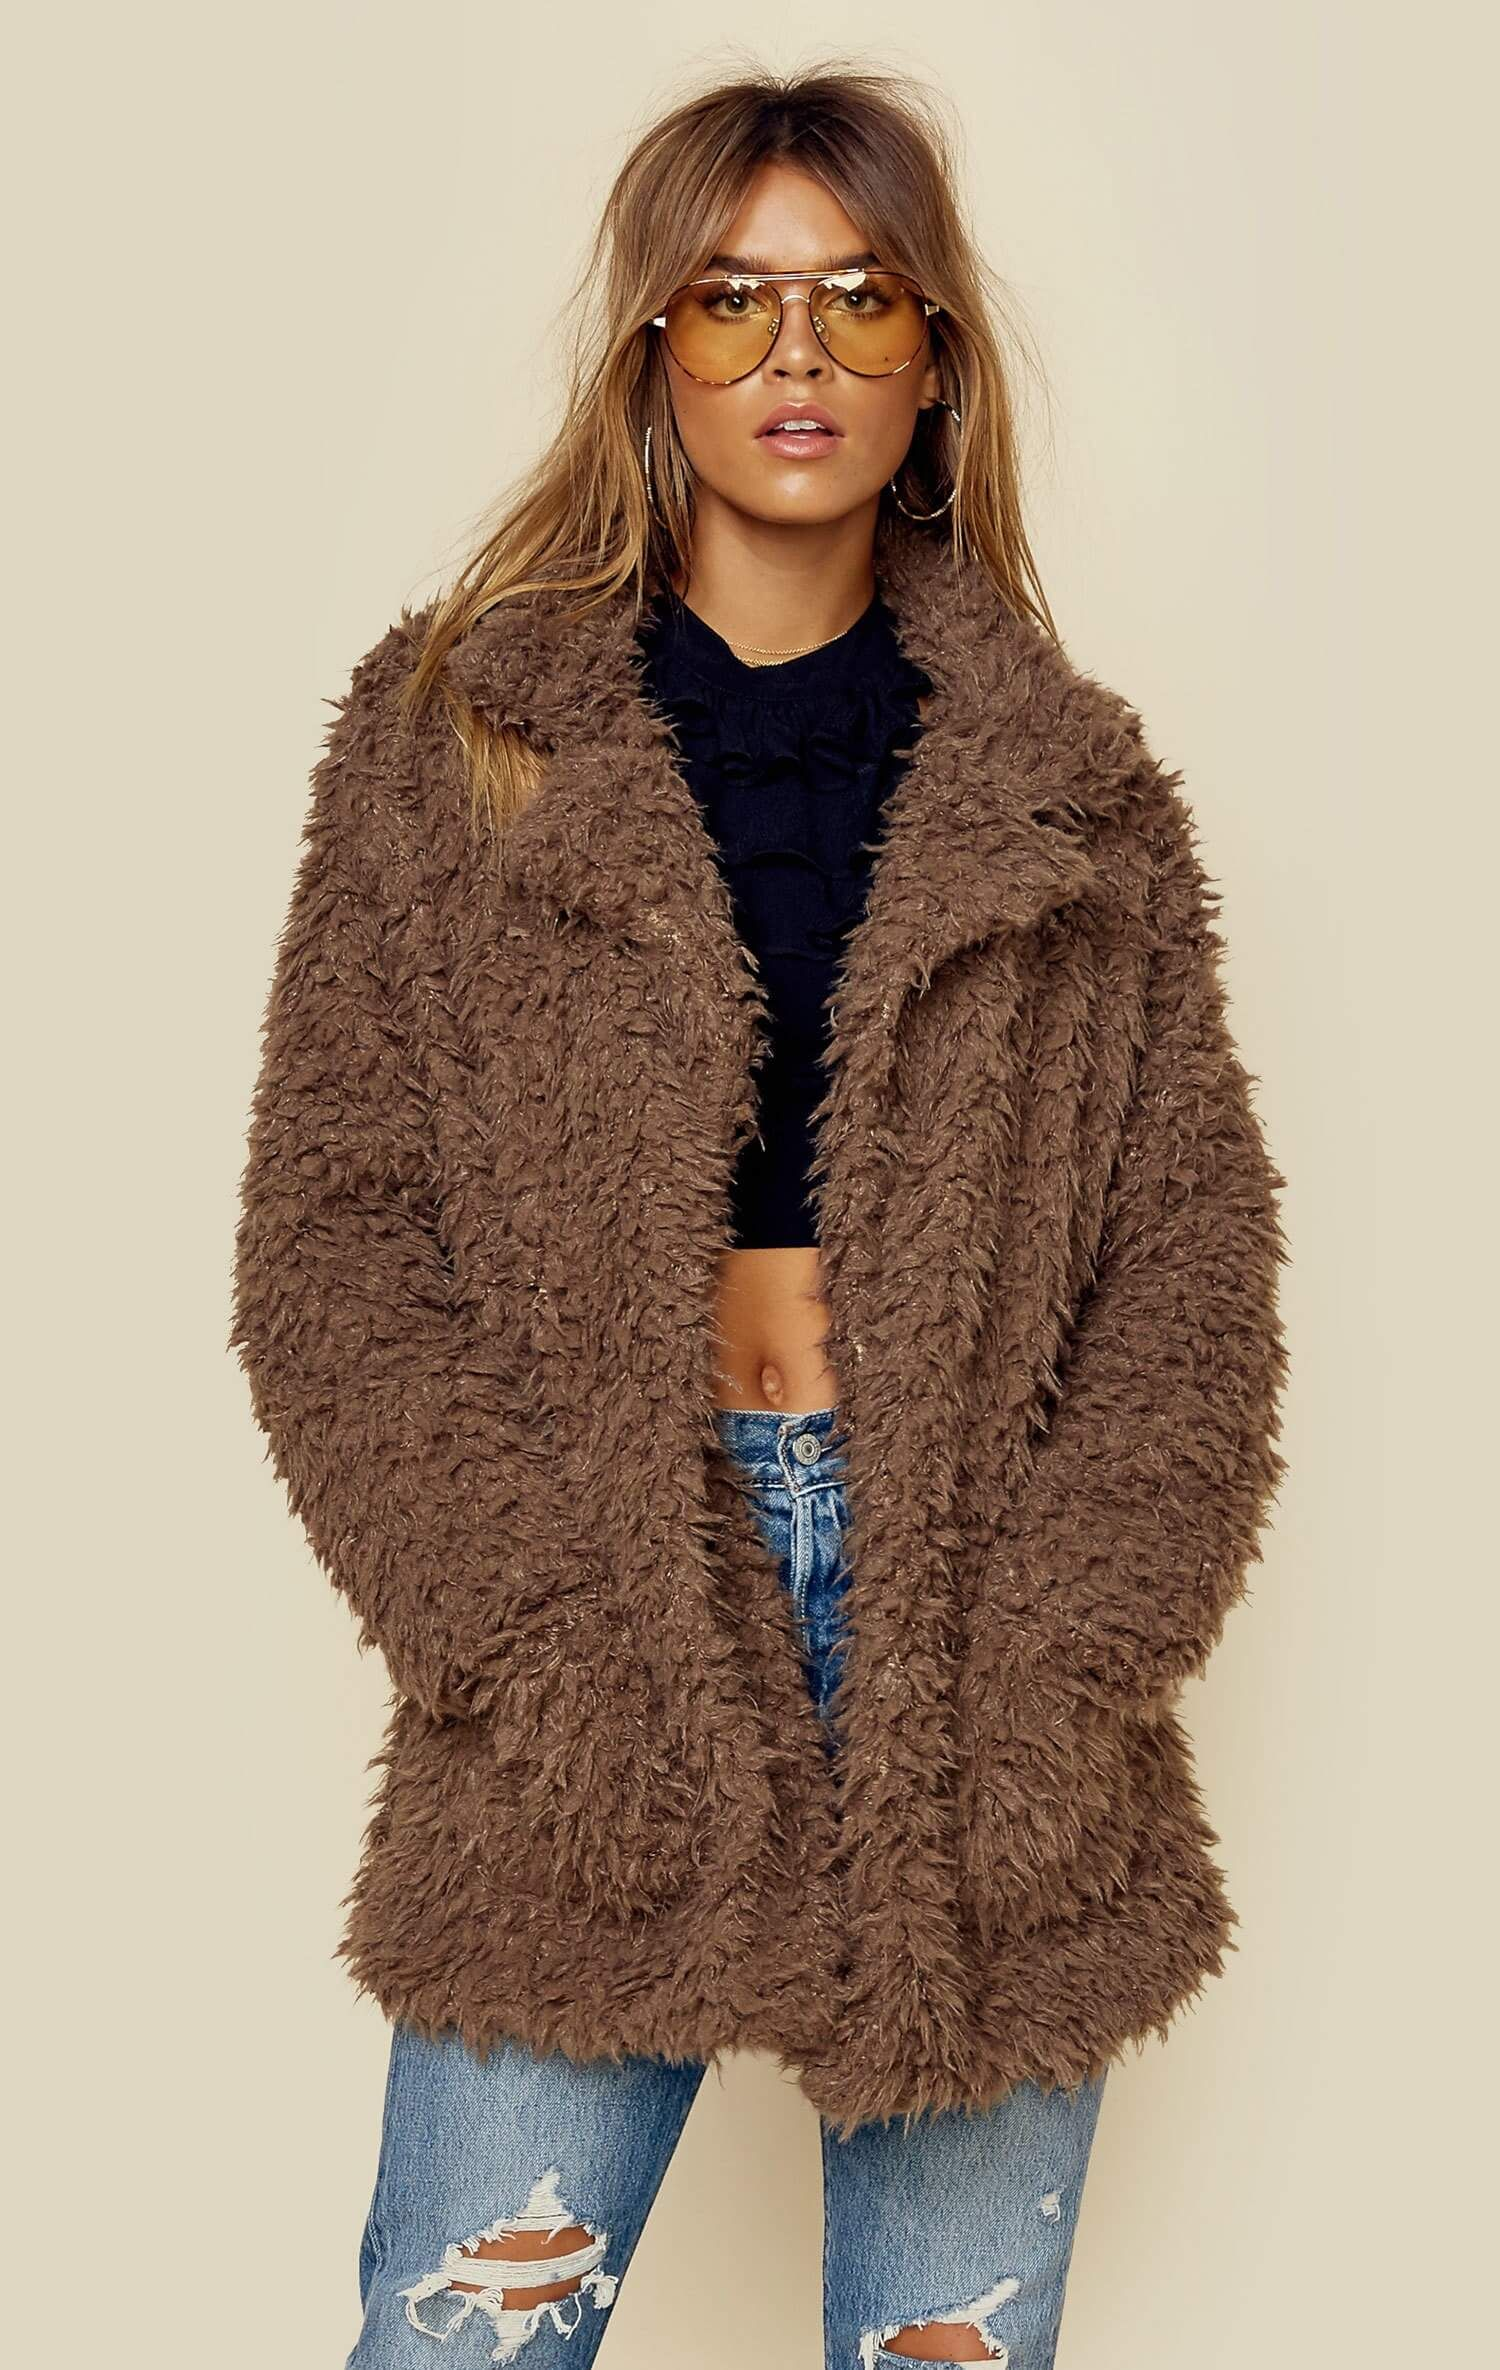 a3c511878db70 Channel your inner Penny Lane with this furry jacket from Sage The Label!  This piece